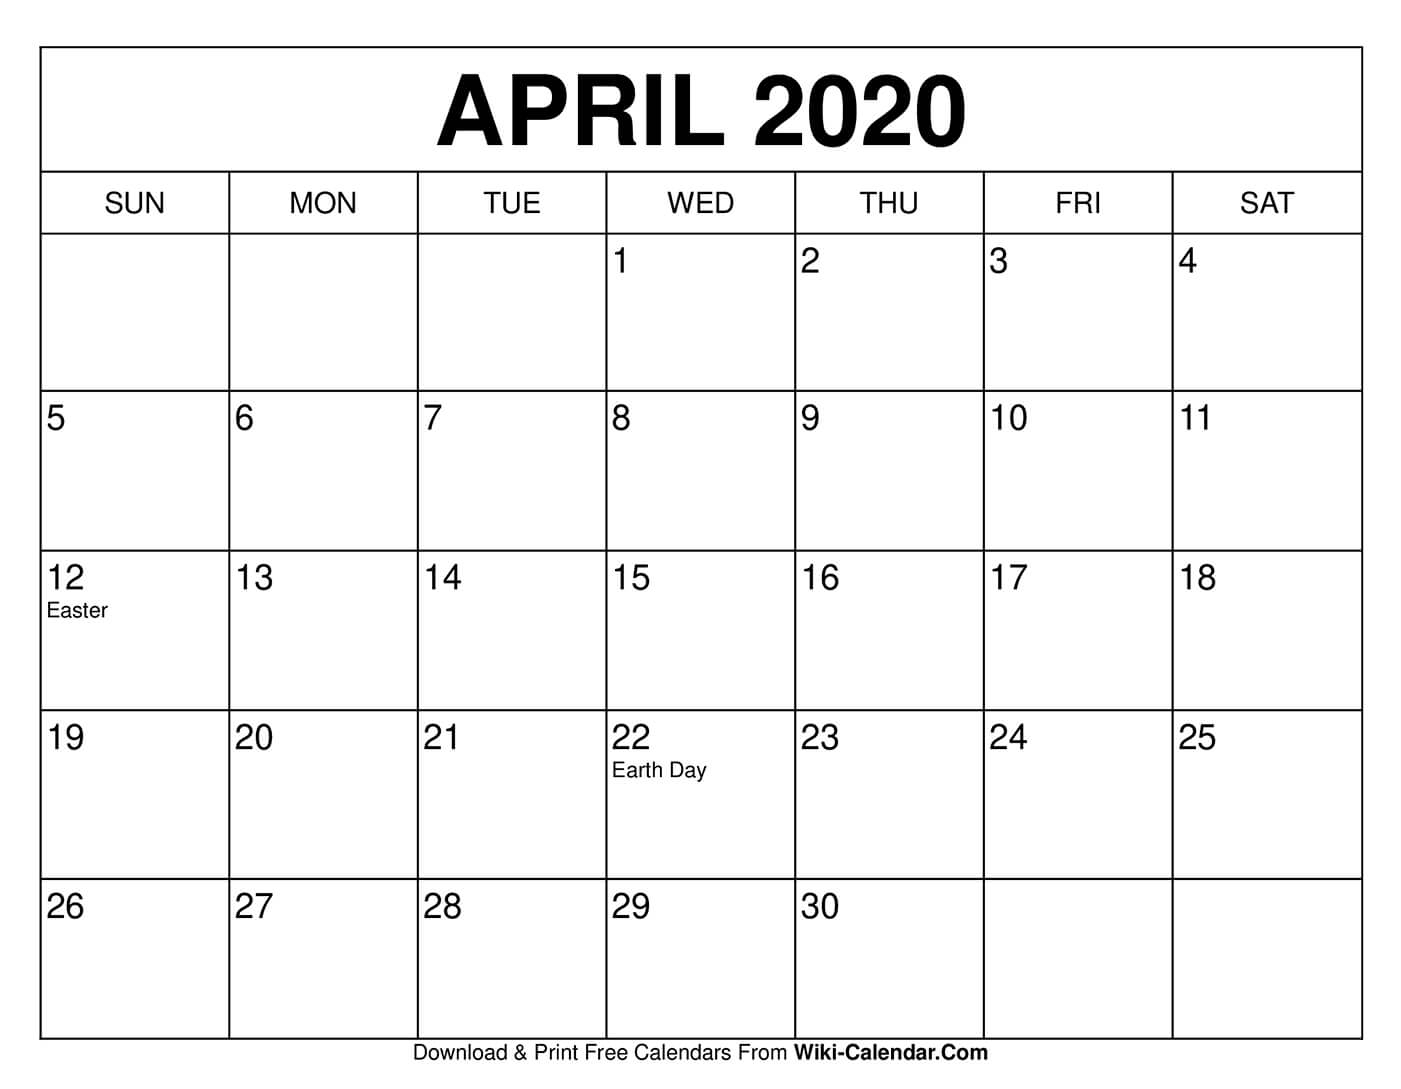 Get Print Free Calendars Without Downloading